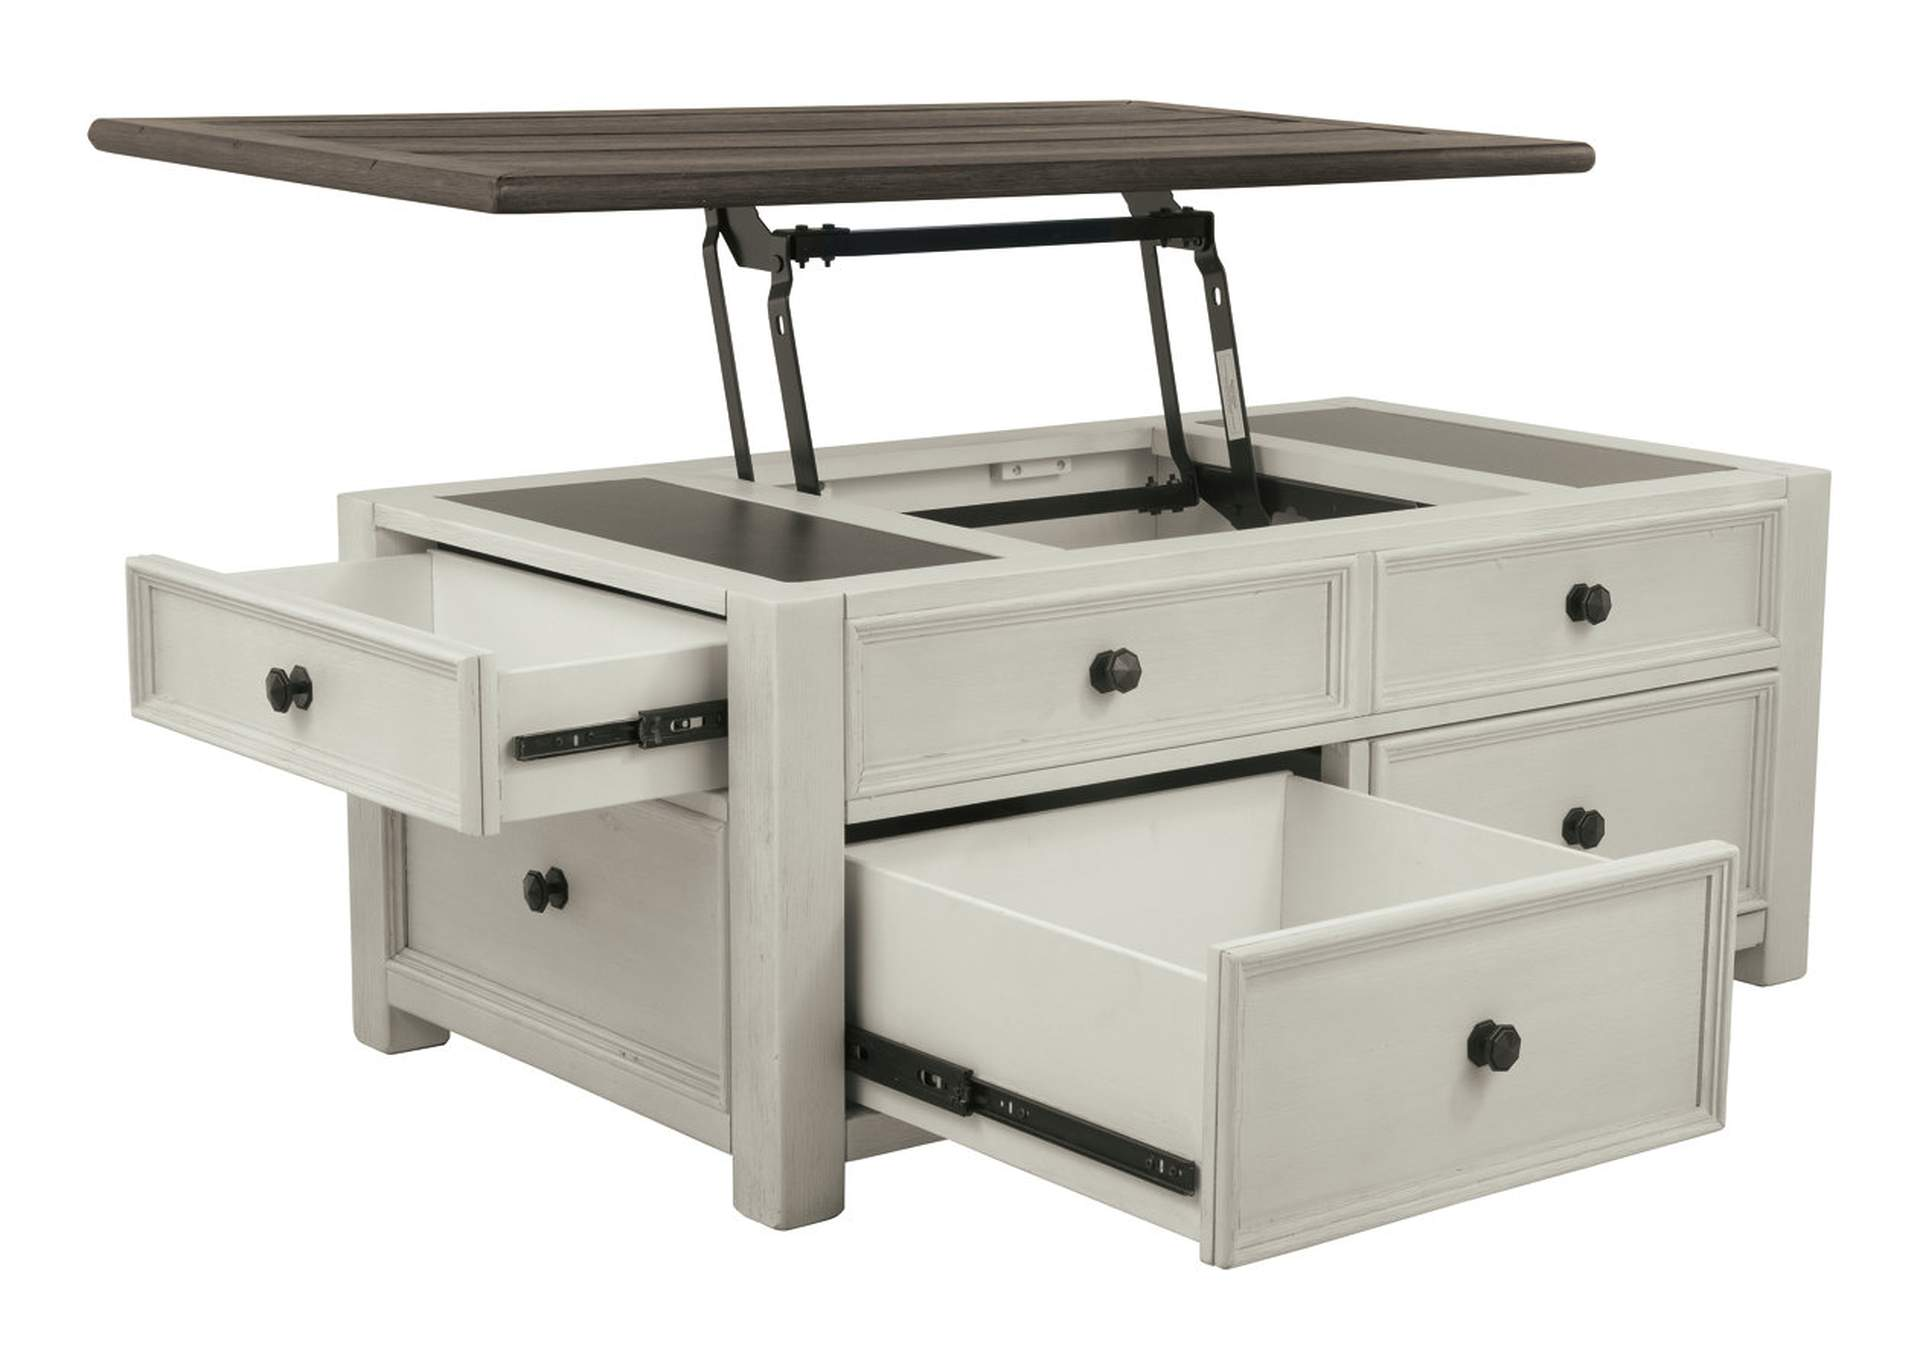 Bolanburg Two-tone Lift Top Cocktail Table,Direct To Consumer Express